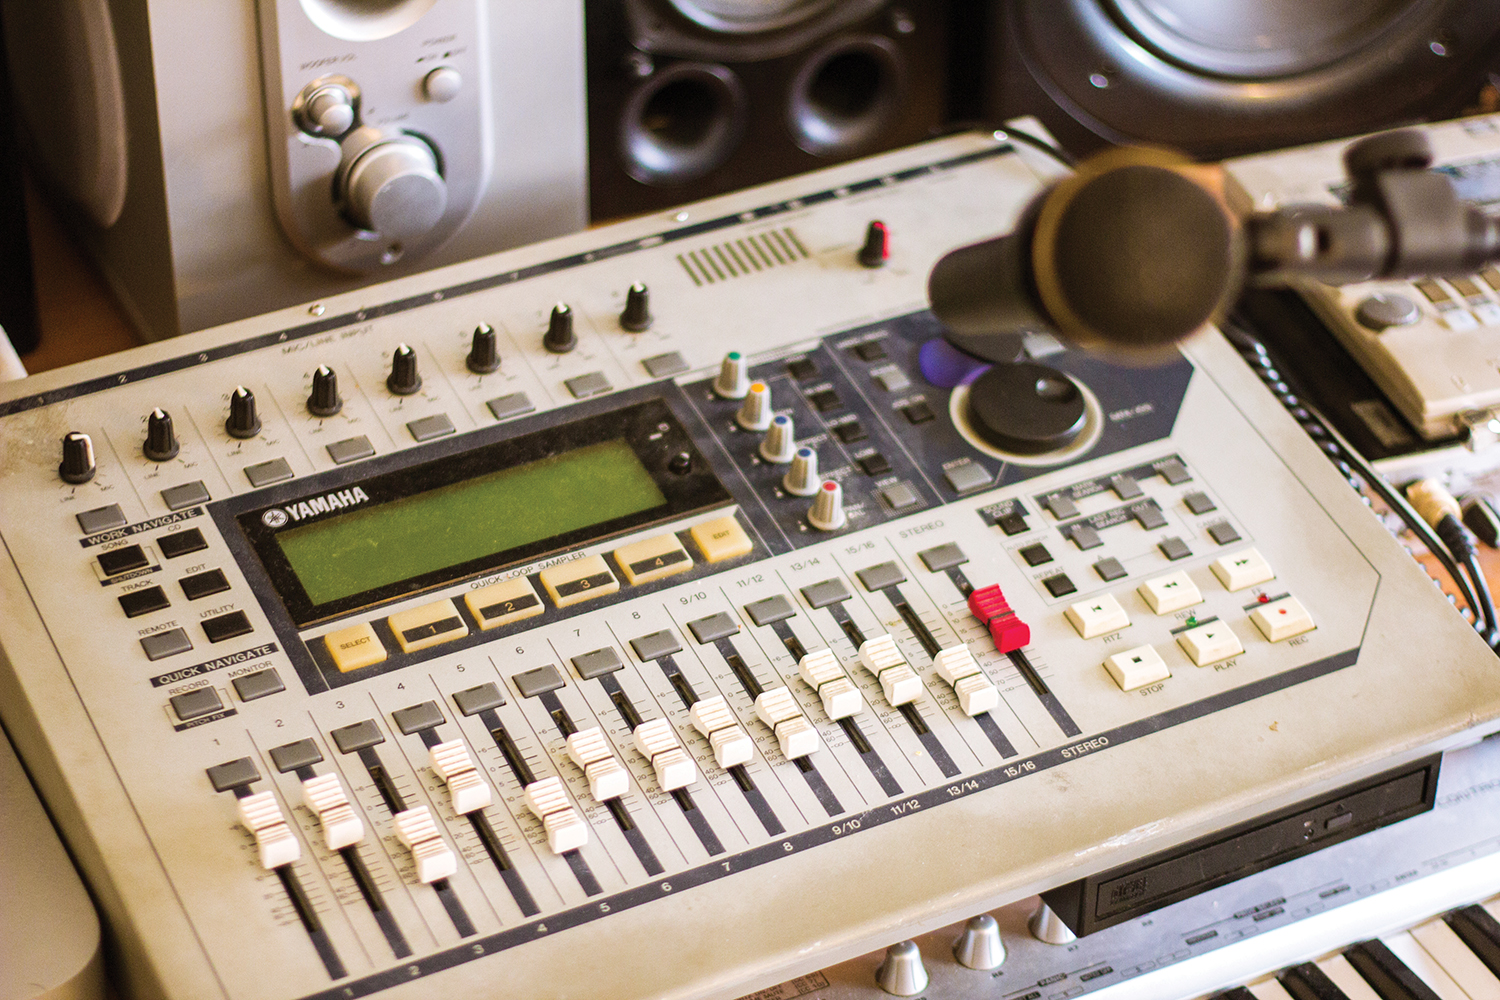 Most people wouldn't consider the Yamaha AW1600 hard disk 16-track machine to be a tone machine, but Harts gets his signature fuzz tone by clipping the input gain… hard.